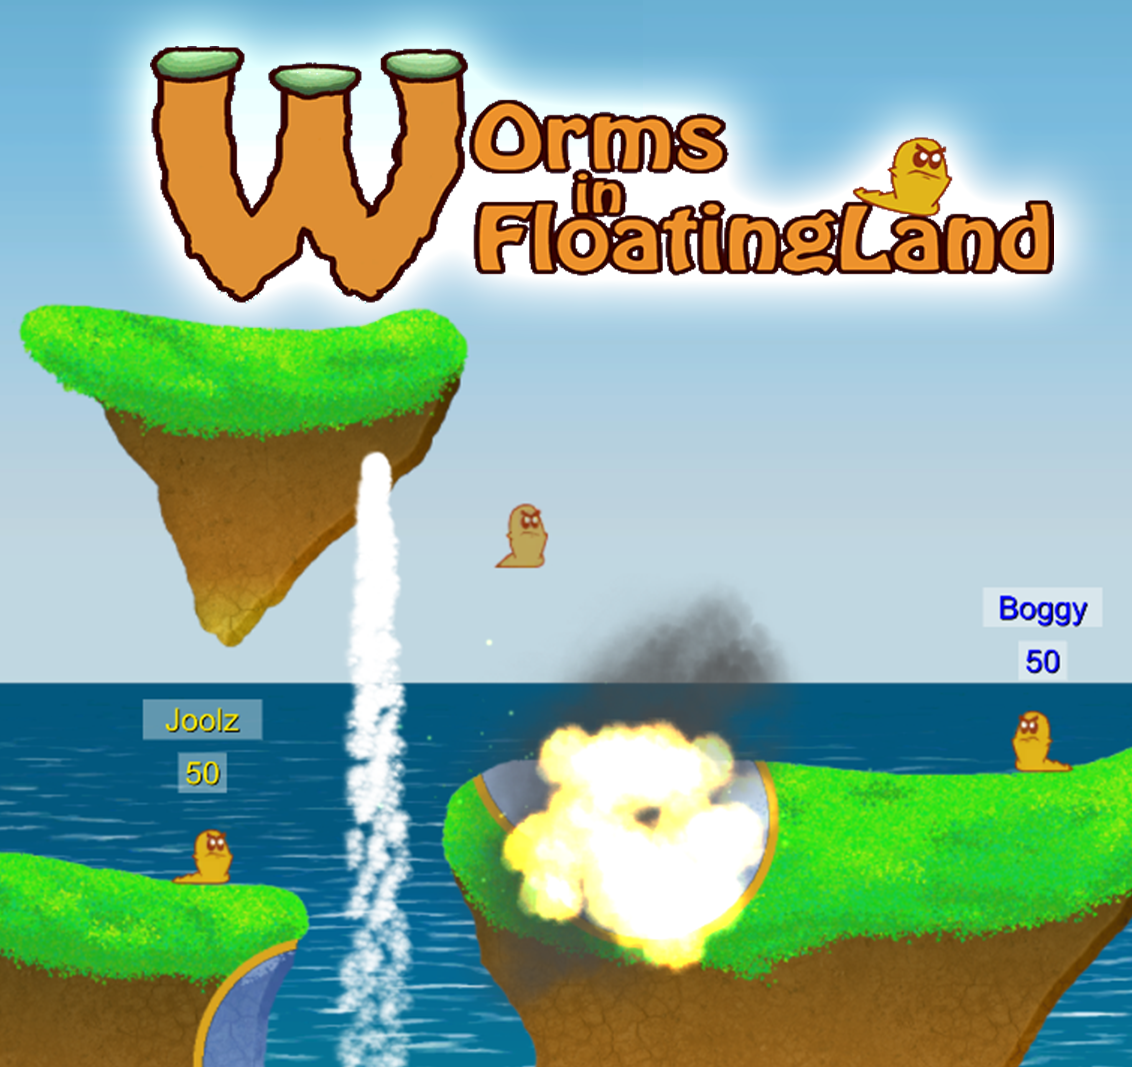 Worms in FloatingLand